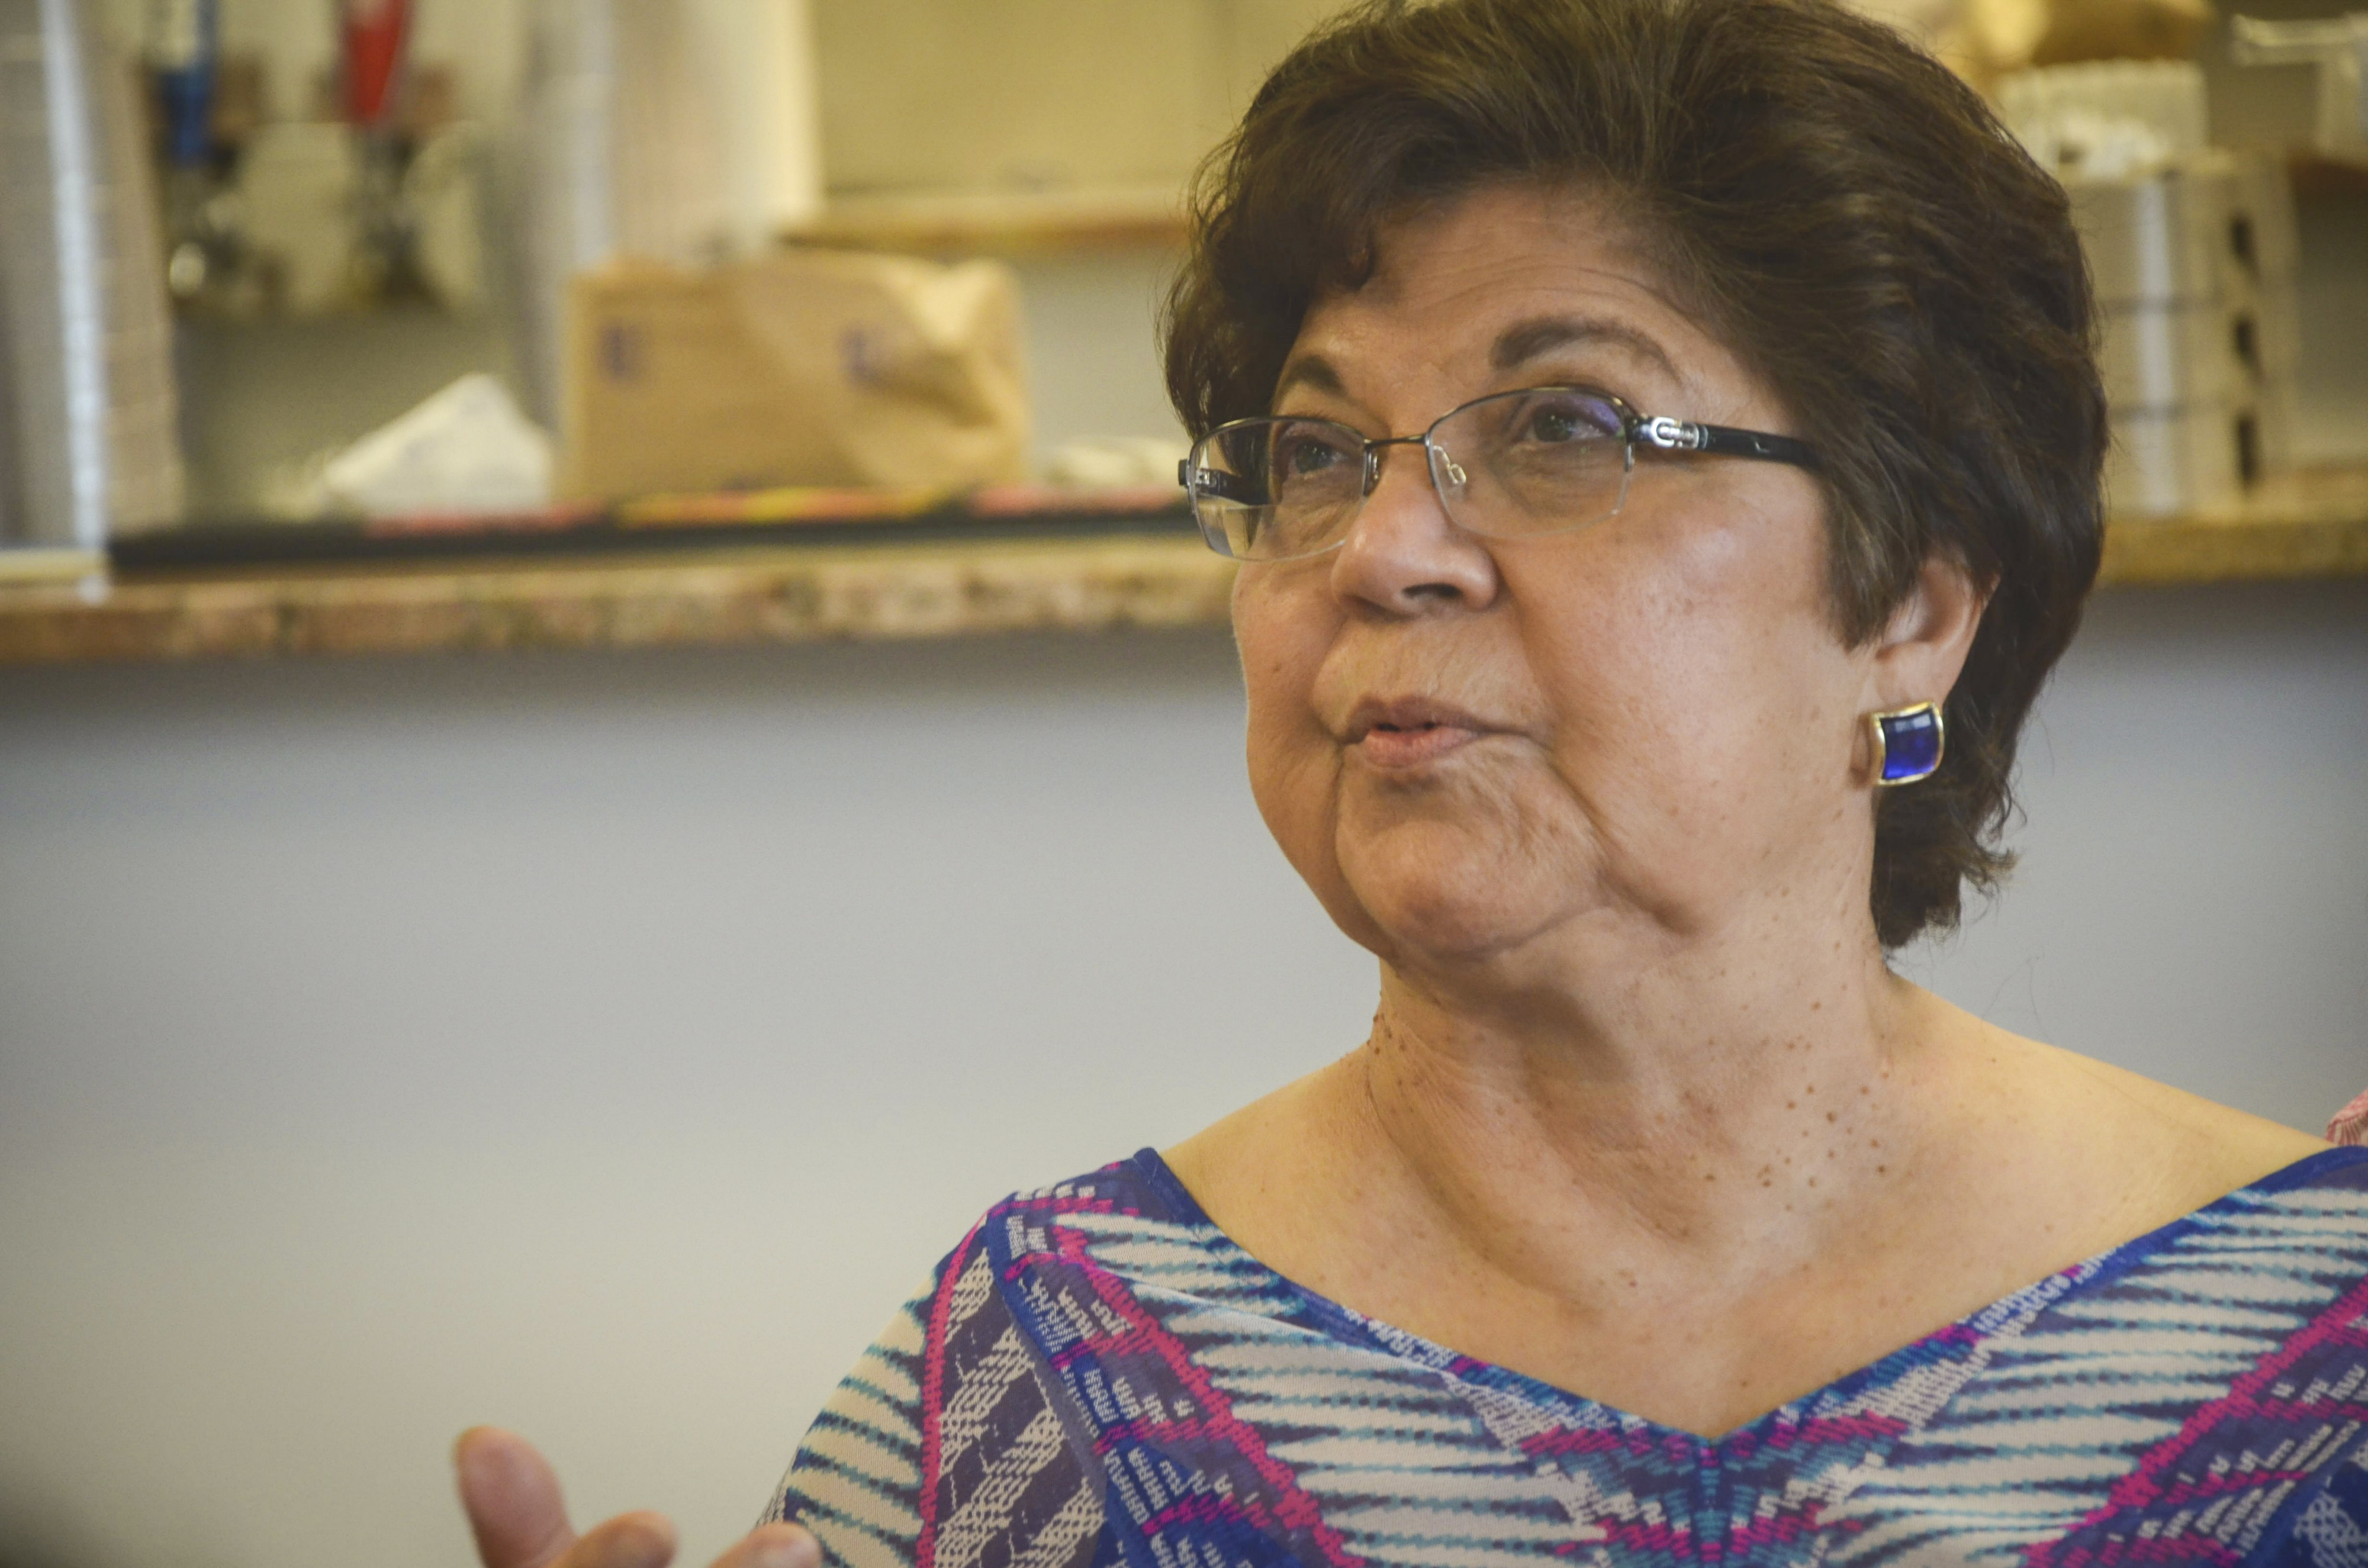 <p>Former state Sen. Polly Baca of Denverattended her 14thDemocratic National Convention this summer as a delegate for Democratic presidential nominee Hillary Clinton.</p>